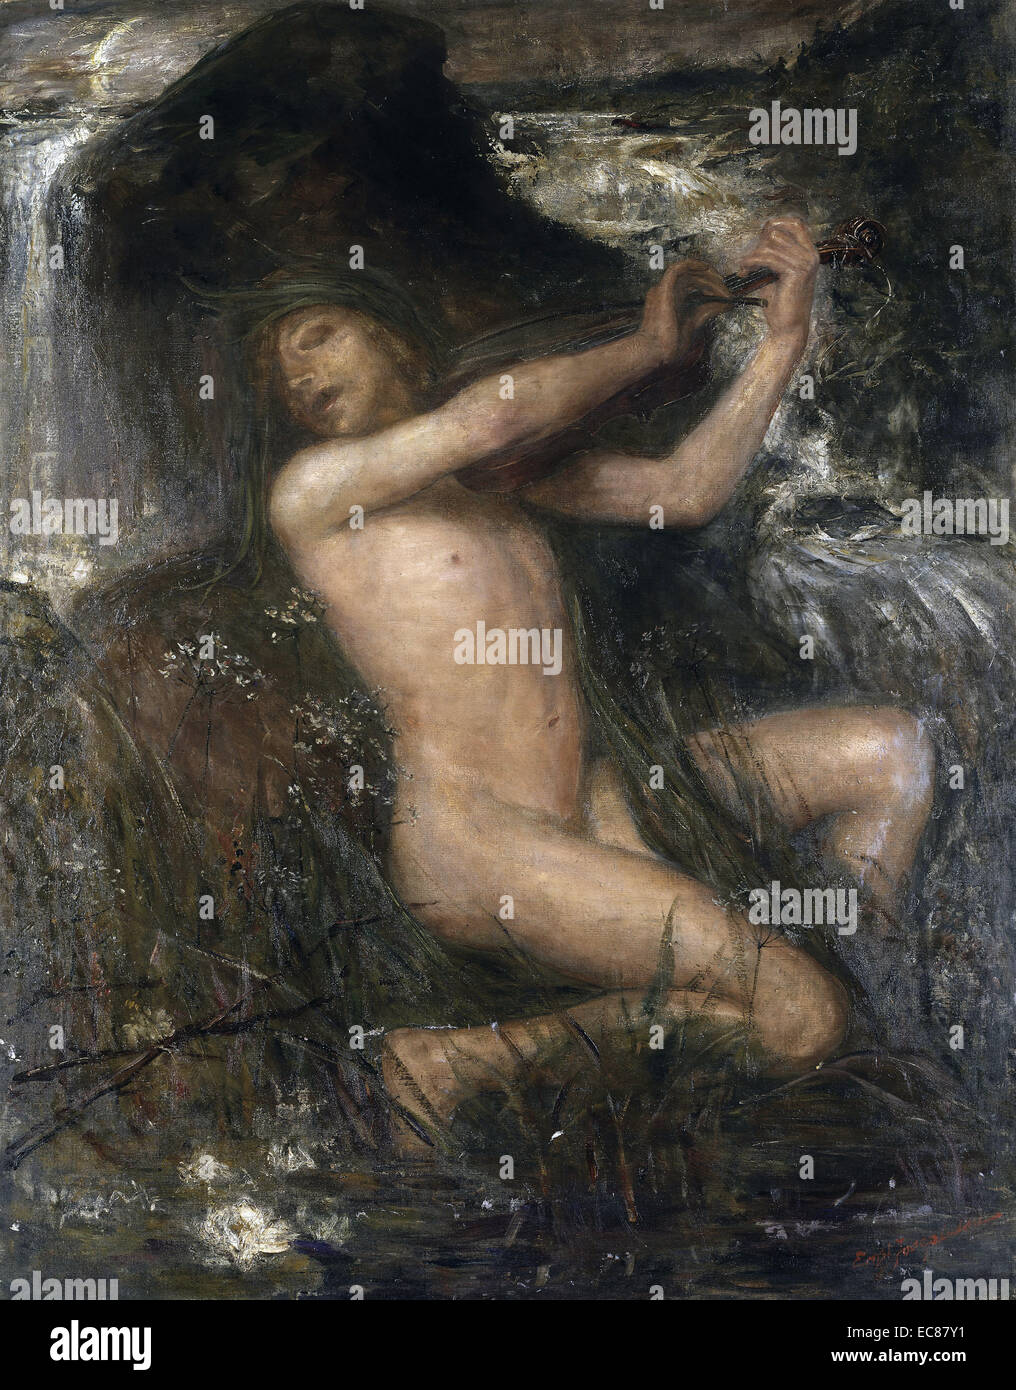 Painting titled 'Näcken' (The Water Sprite) painted by Ernst Josephson (1851-1906). Dated 1884 - Stock Image